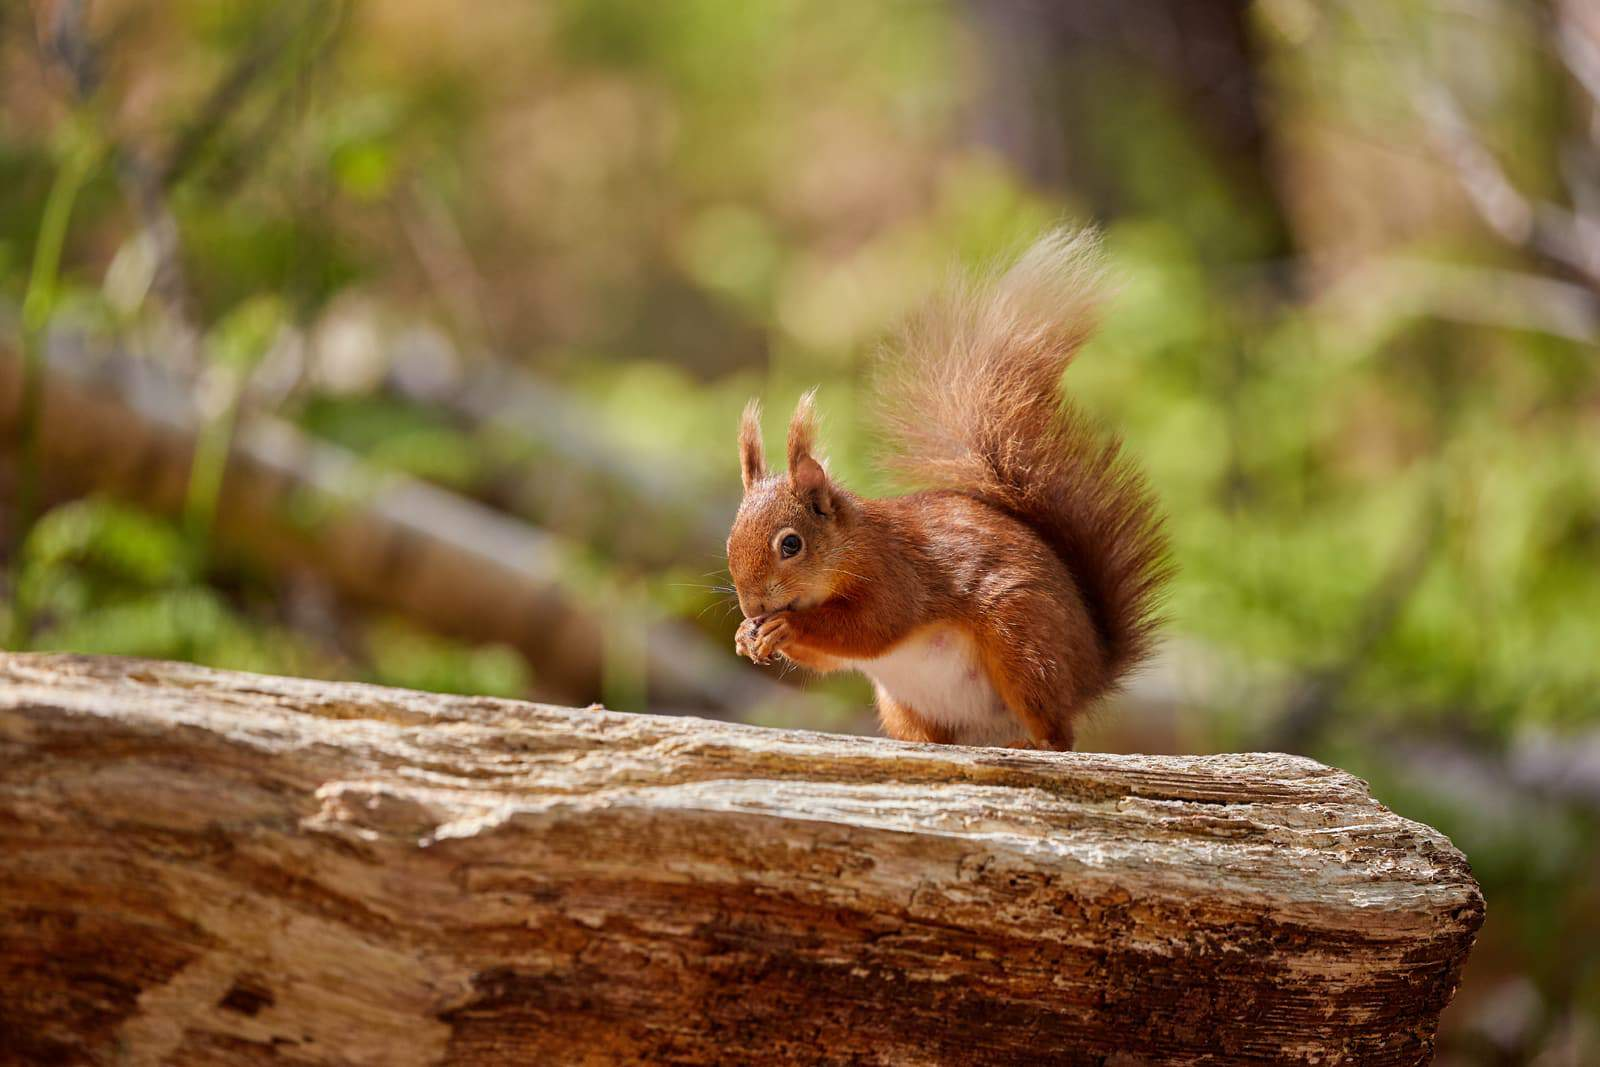 Brownsea Island is the largest island in Poole Harbour and one of the last safe havens for red squirrels in the south of the UK, boasting a significant population for its size. Photo ©Nigel Wood